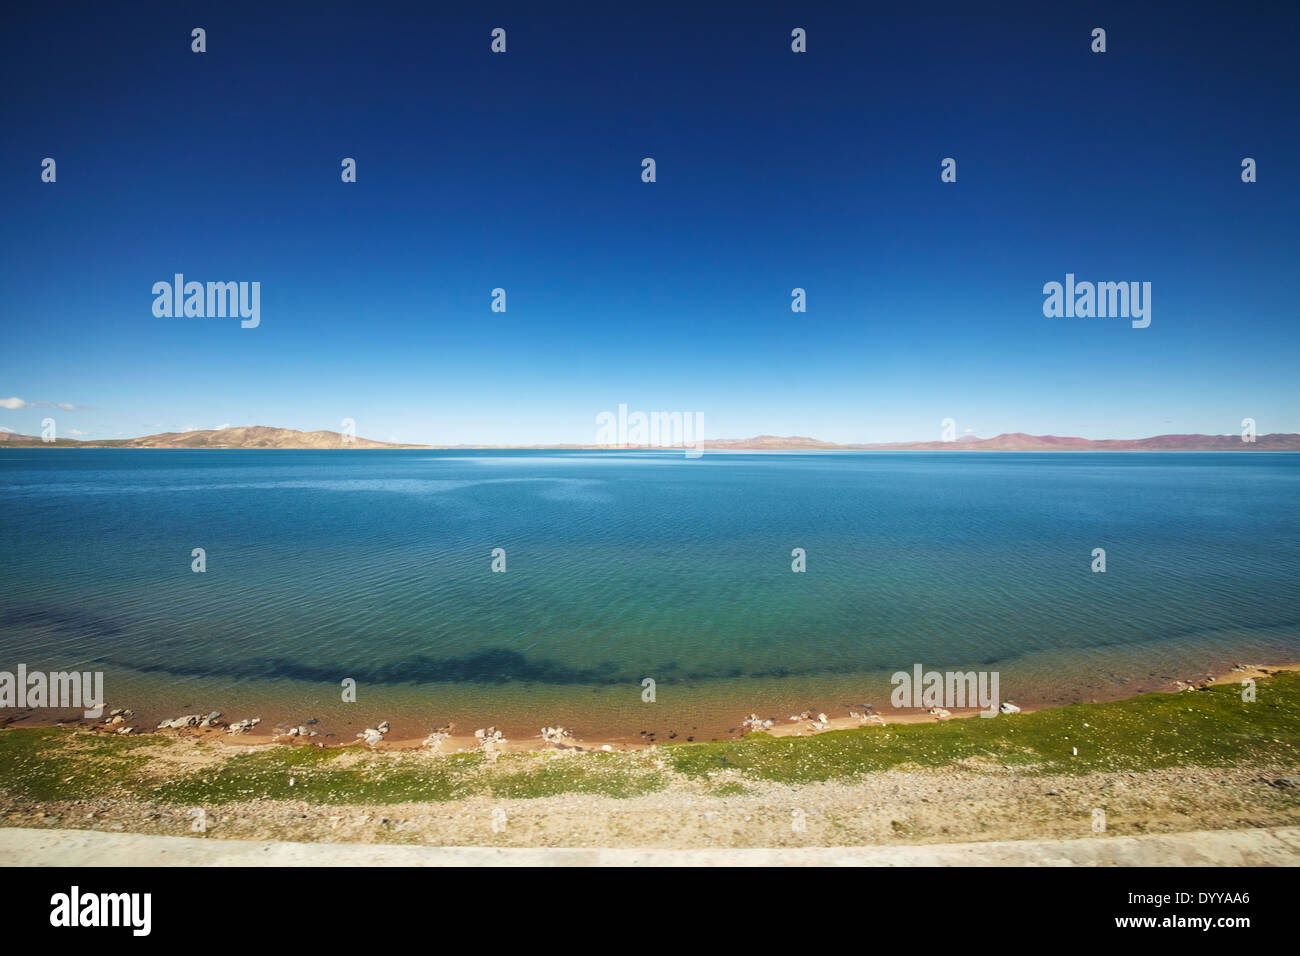 A view of the blue Qinghai lake from the Qinghai Tibet train. - Stock Image